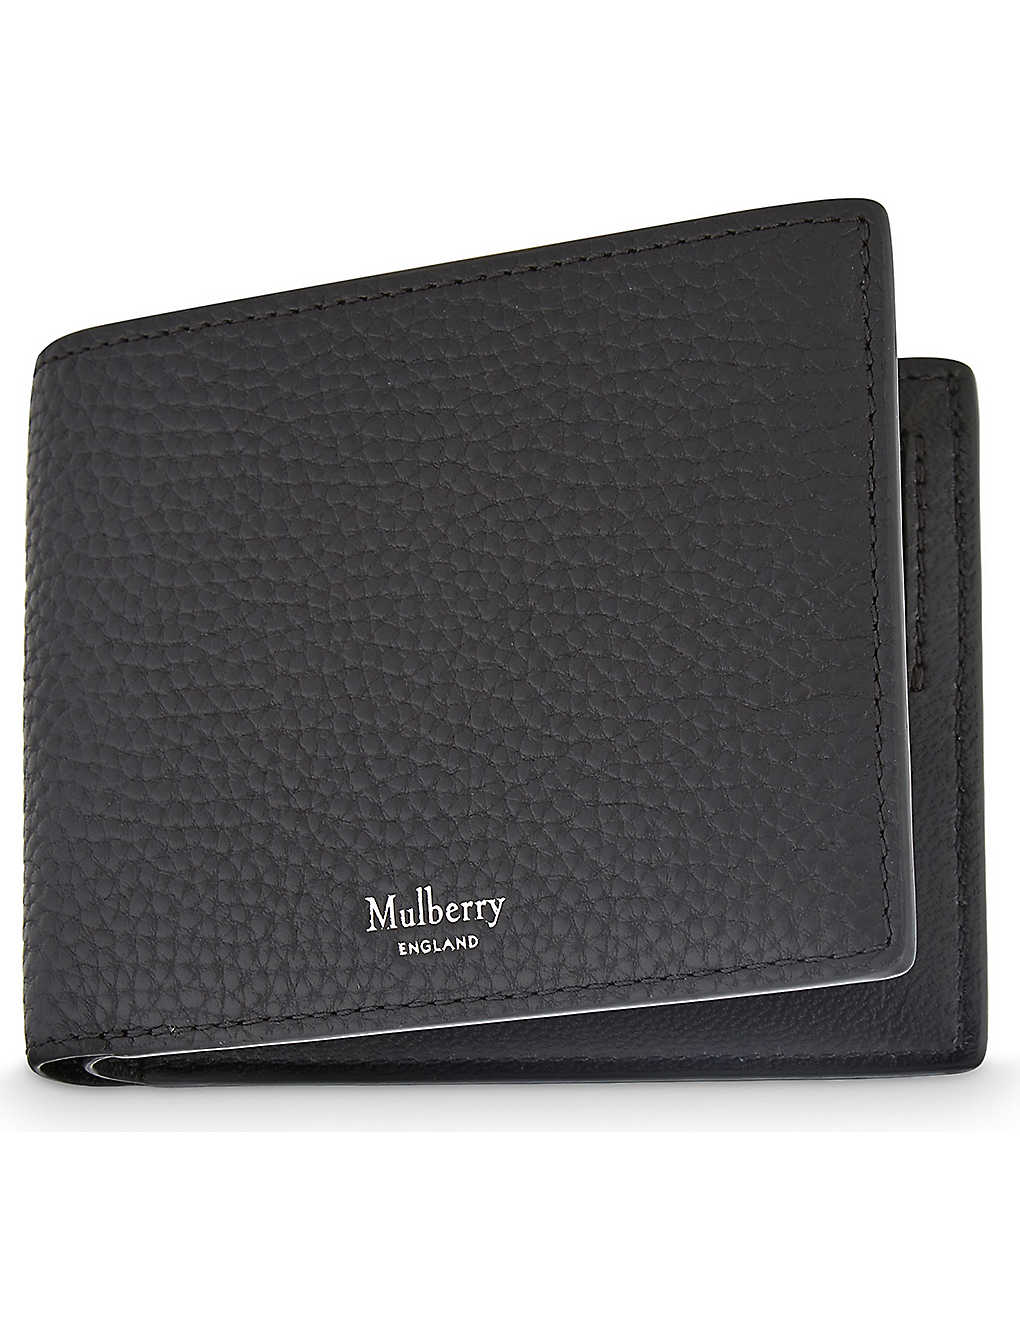 38cb338a3599 MULBERRY - Grained leather billfold wallet